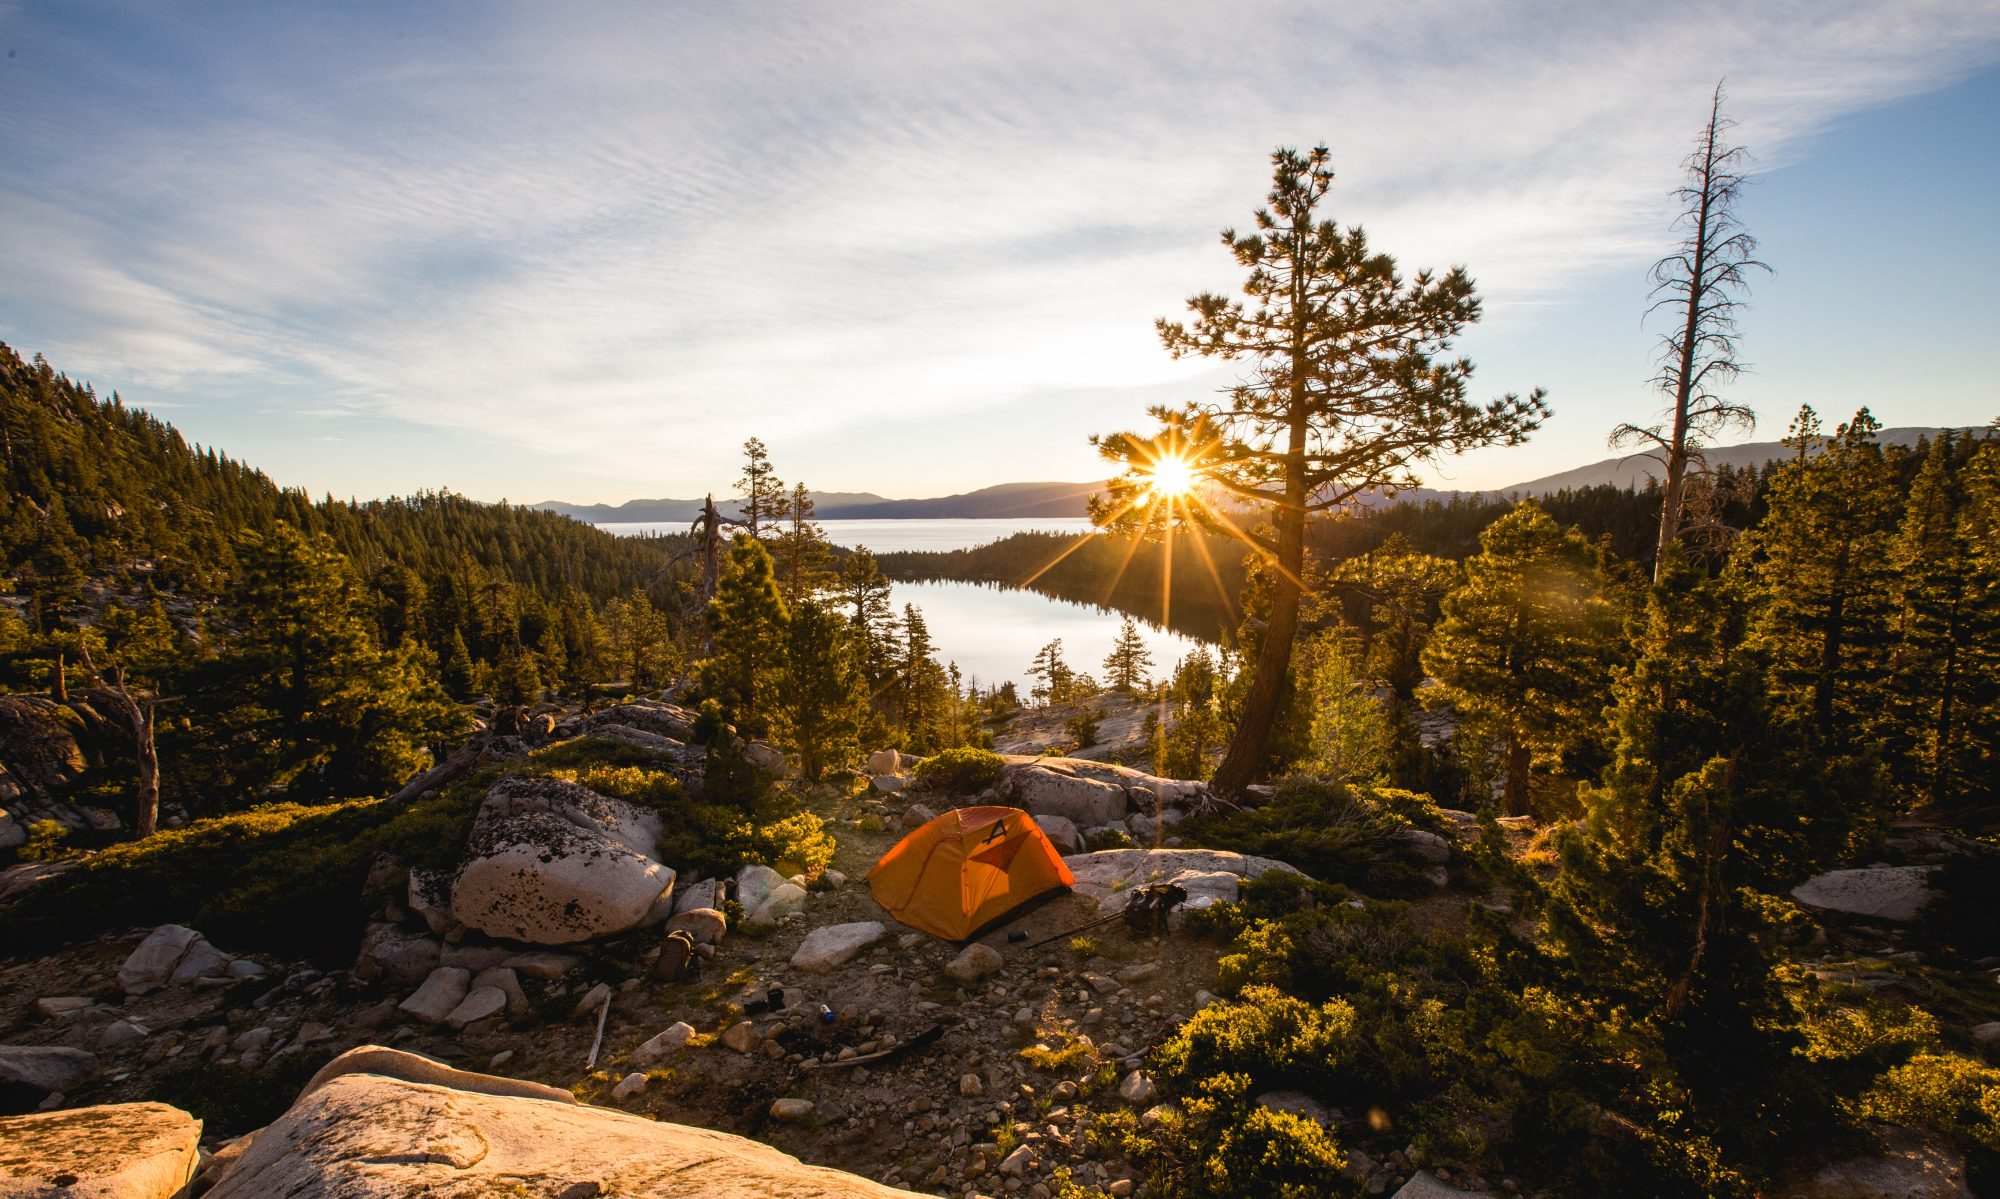 tent on a rocky outcropping overlooking the sun rising above a lake